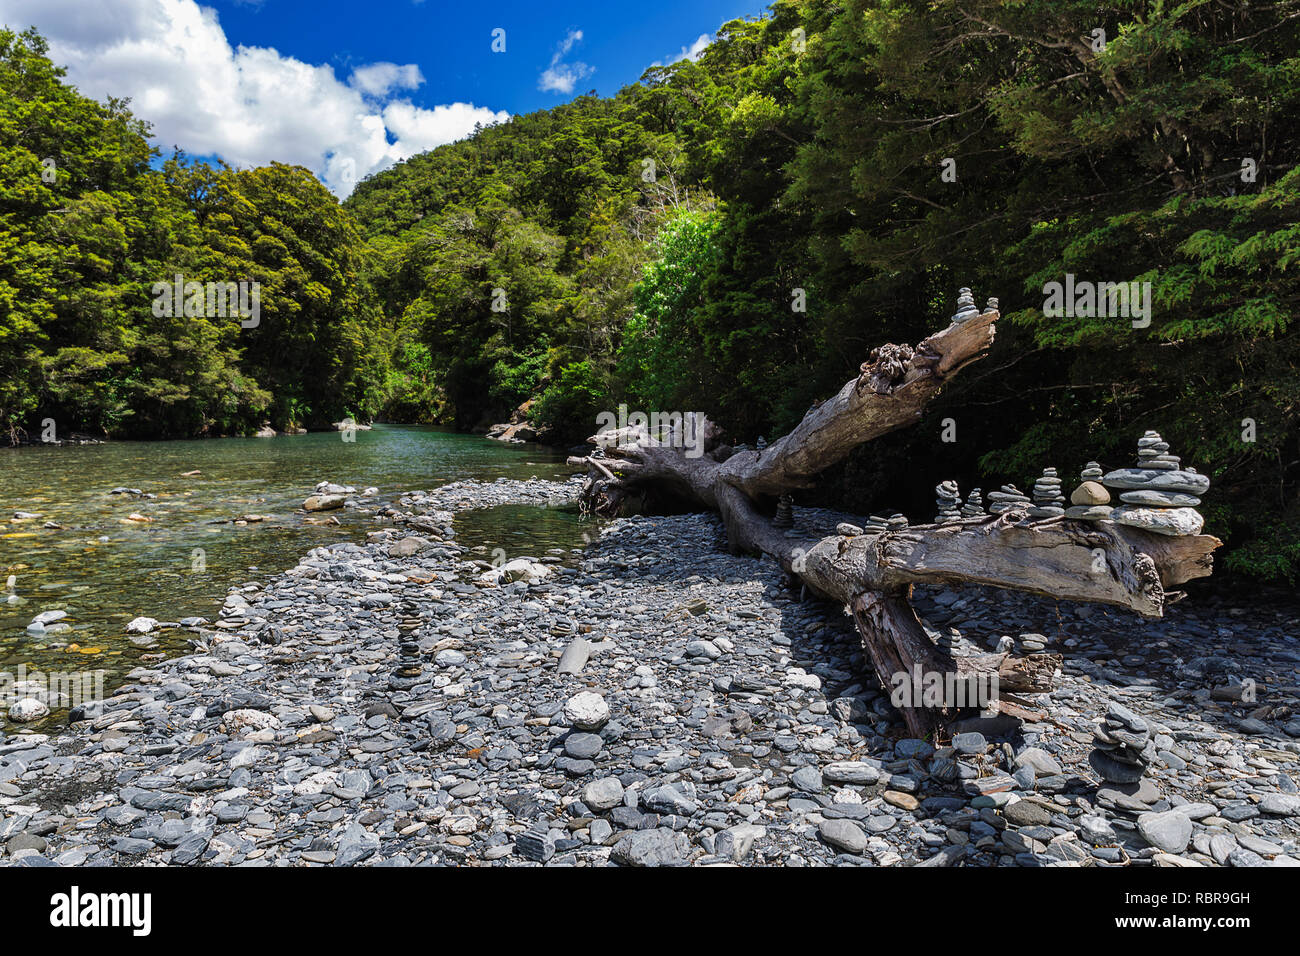 Old tree and stone pyramids near Fantail Falls on South Island, New Zealand - Stock Image